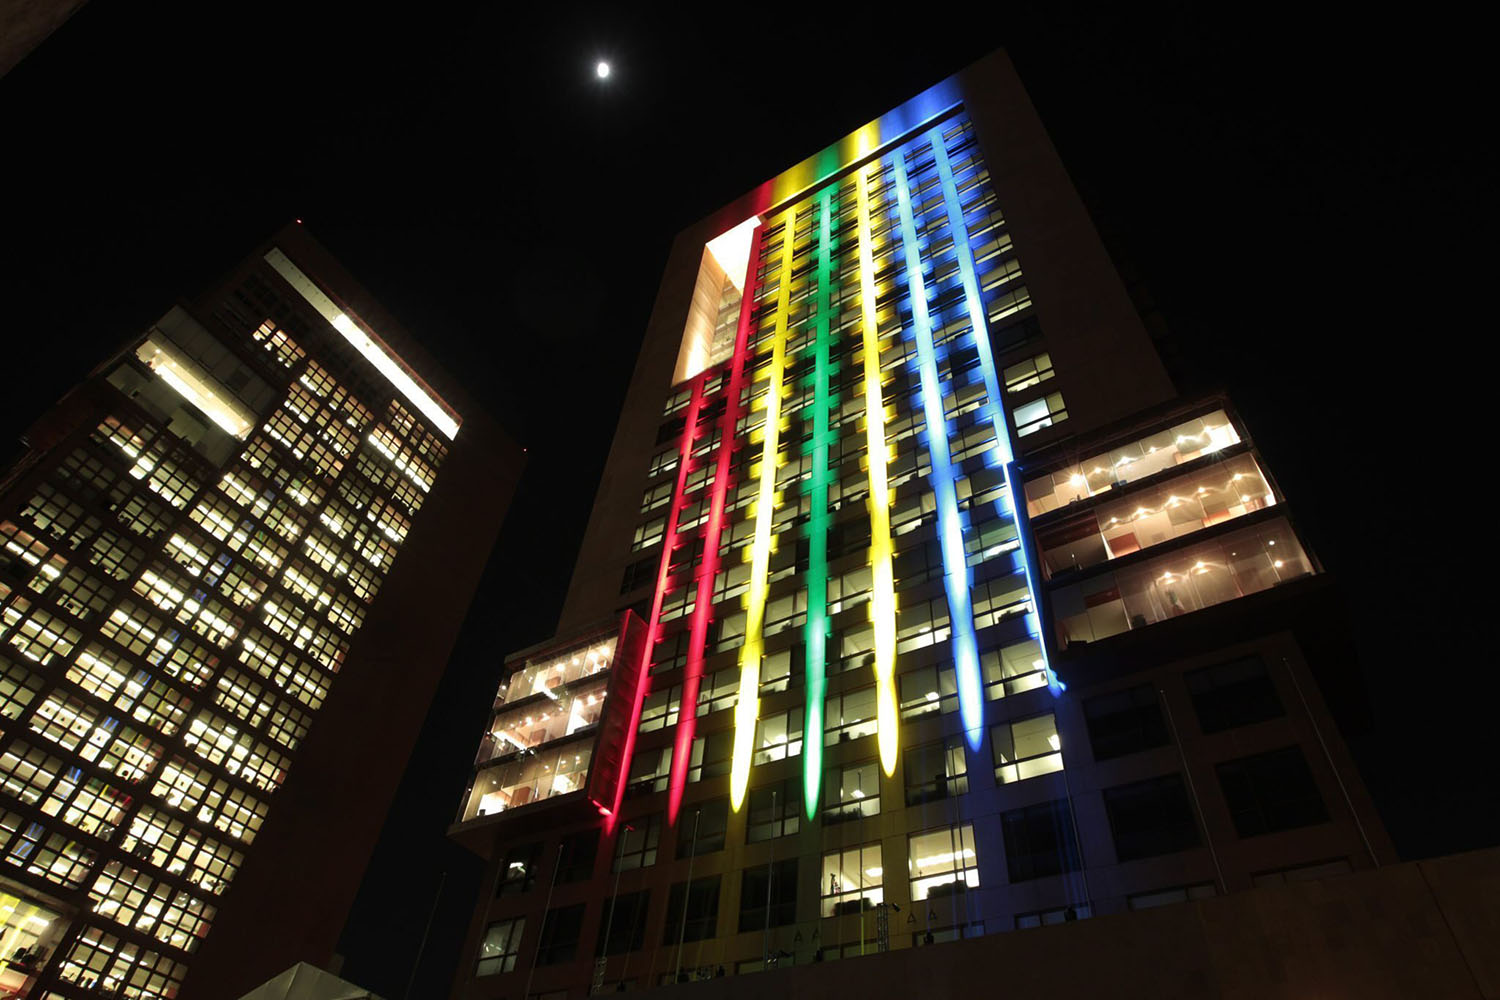 Dec. 11, 2013. A photo provided by the office of the Secretary of Foreign Affairs of Mexico on Dec. 12, 2013 shows it's headquarters being illuminated with the colors of the South African flag in honor of deceased late president of South Africa, Nelson Mandela, in Mexico City.